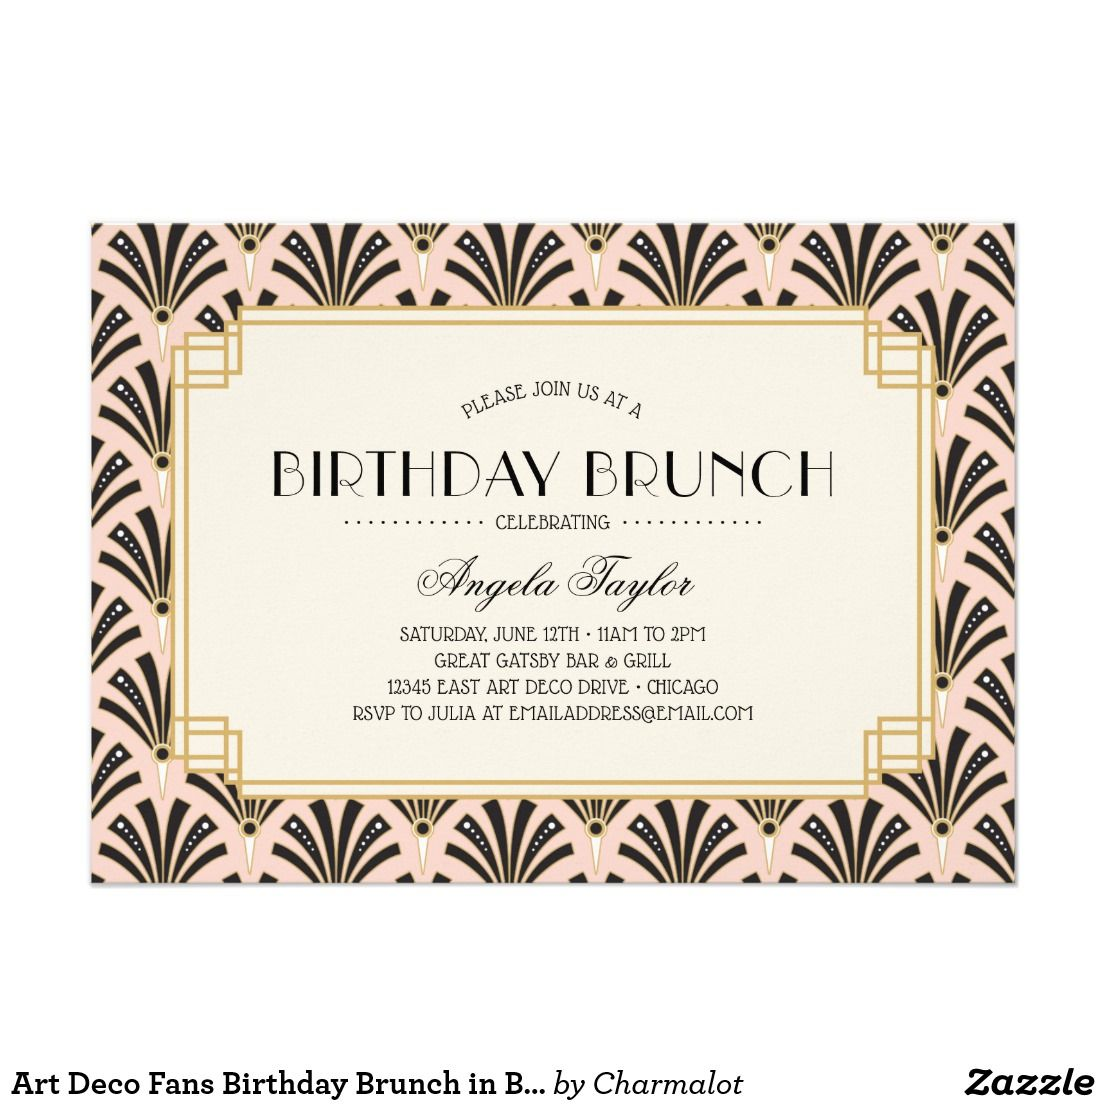 Art Deco Fans Birthday Brunch in Blush Pink Card | Stylish text ...